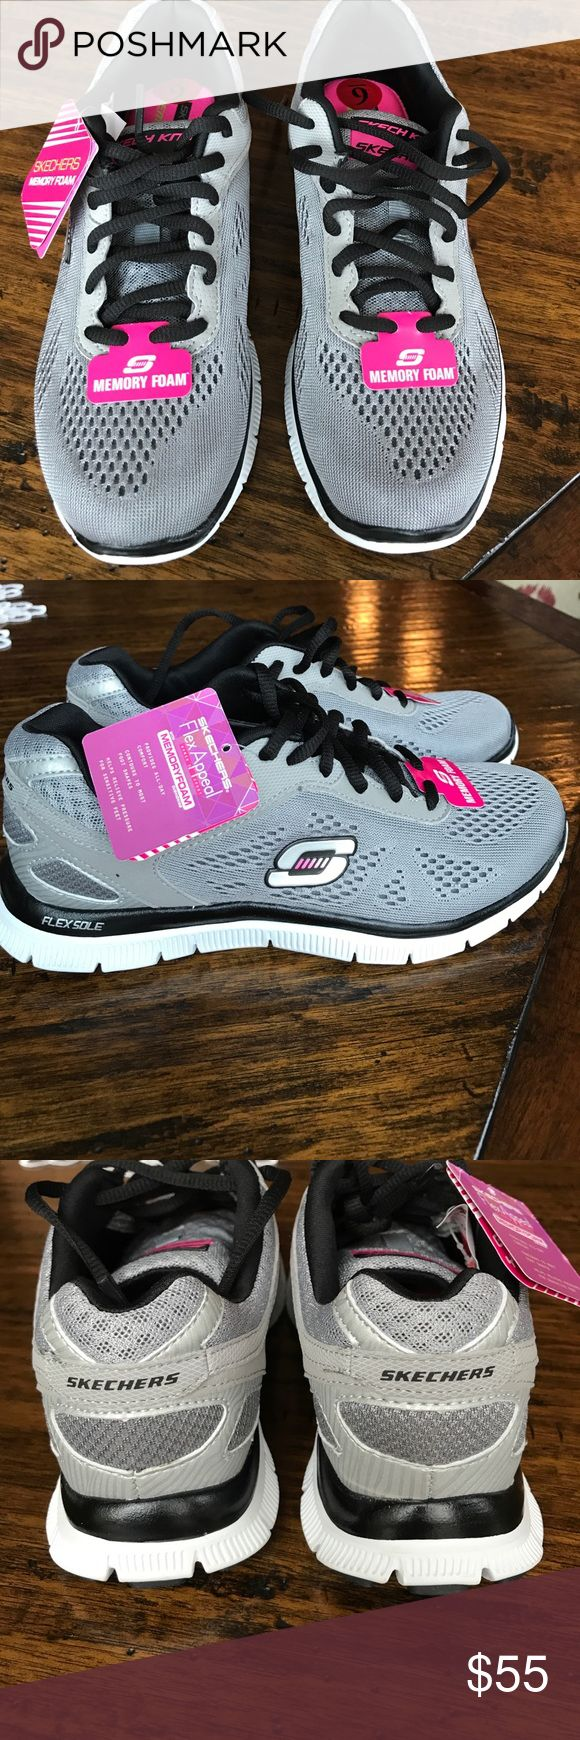 Sketchers Sneakers Flex appeal with memory foam that provides all-day comfort, contours to most foot shapes and helps relieve pressure for sensitive feet. Color: gray/silver. Size: 6 Skechers Shoes Athletic Shoes